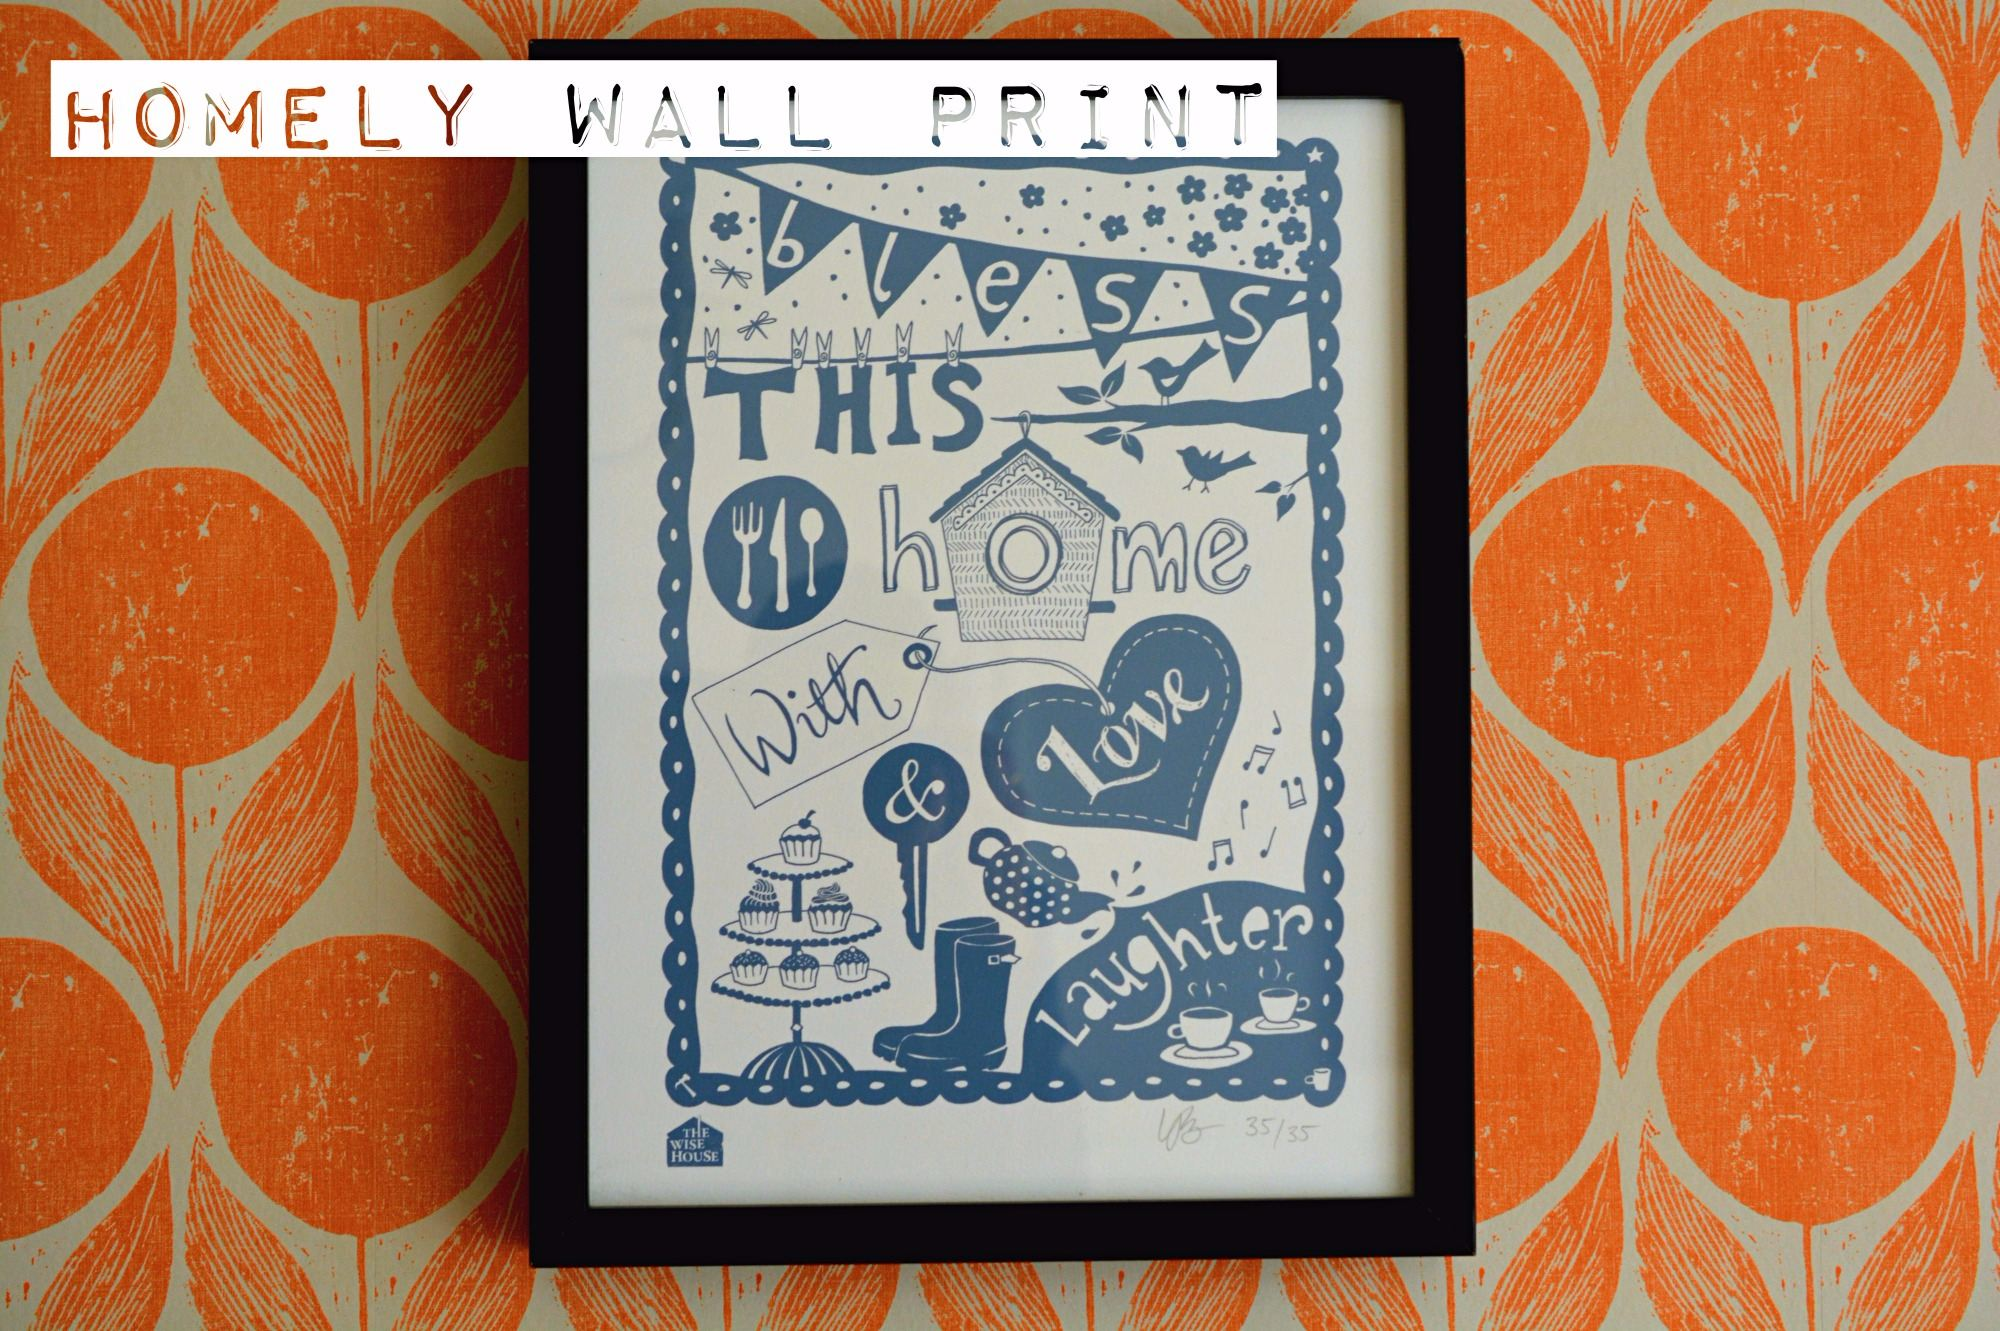 Giclee Wall Print The Wise House